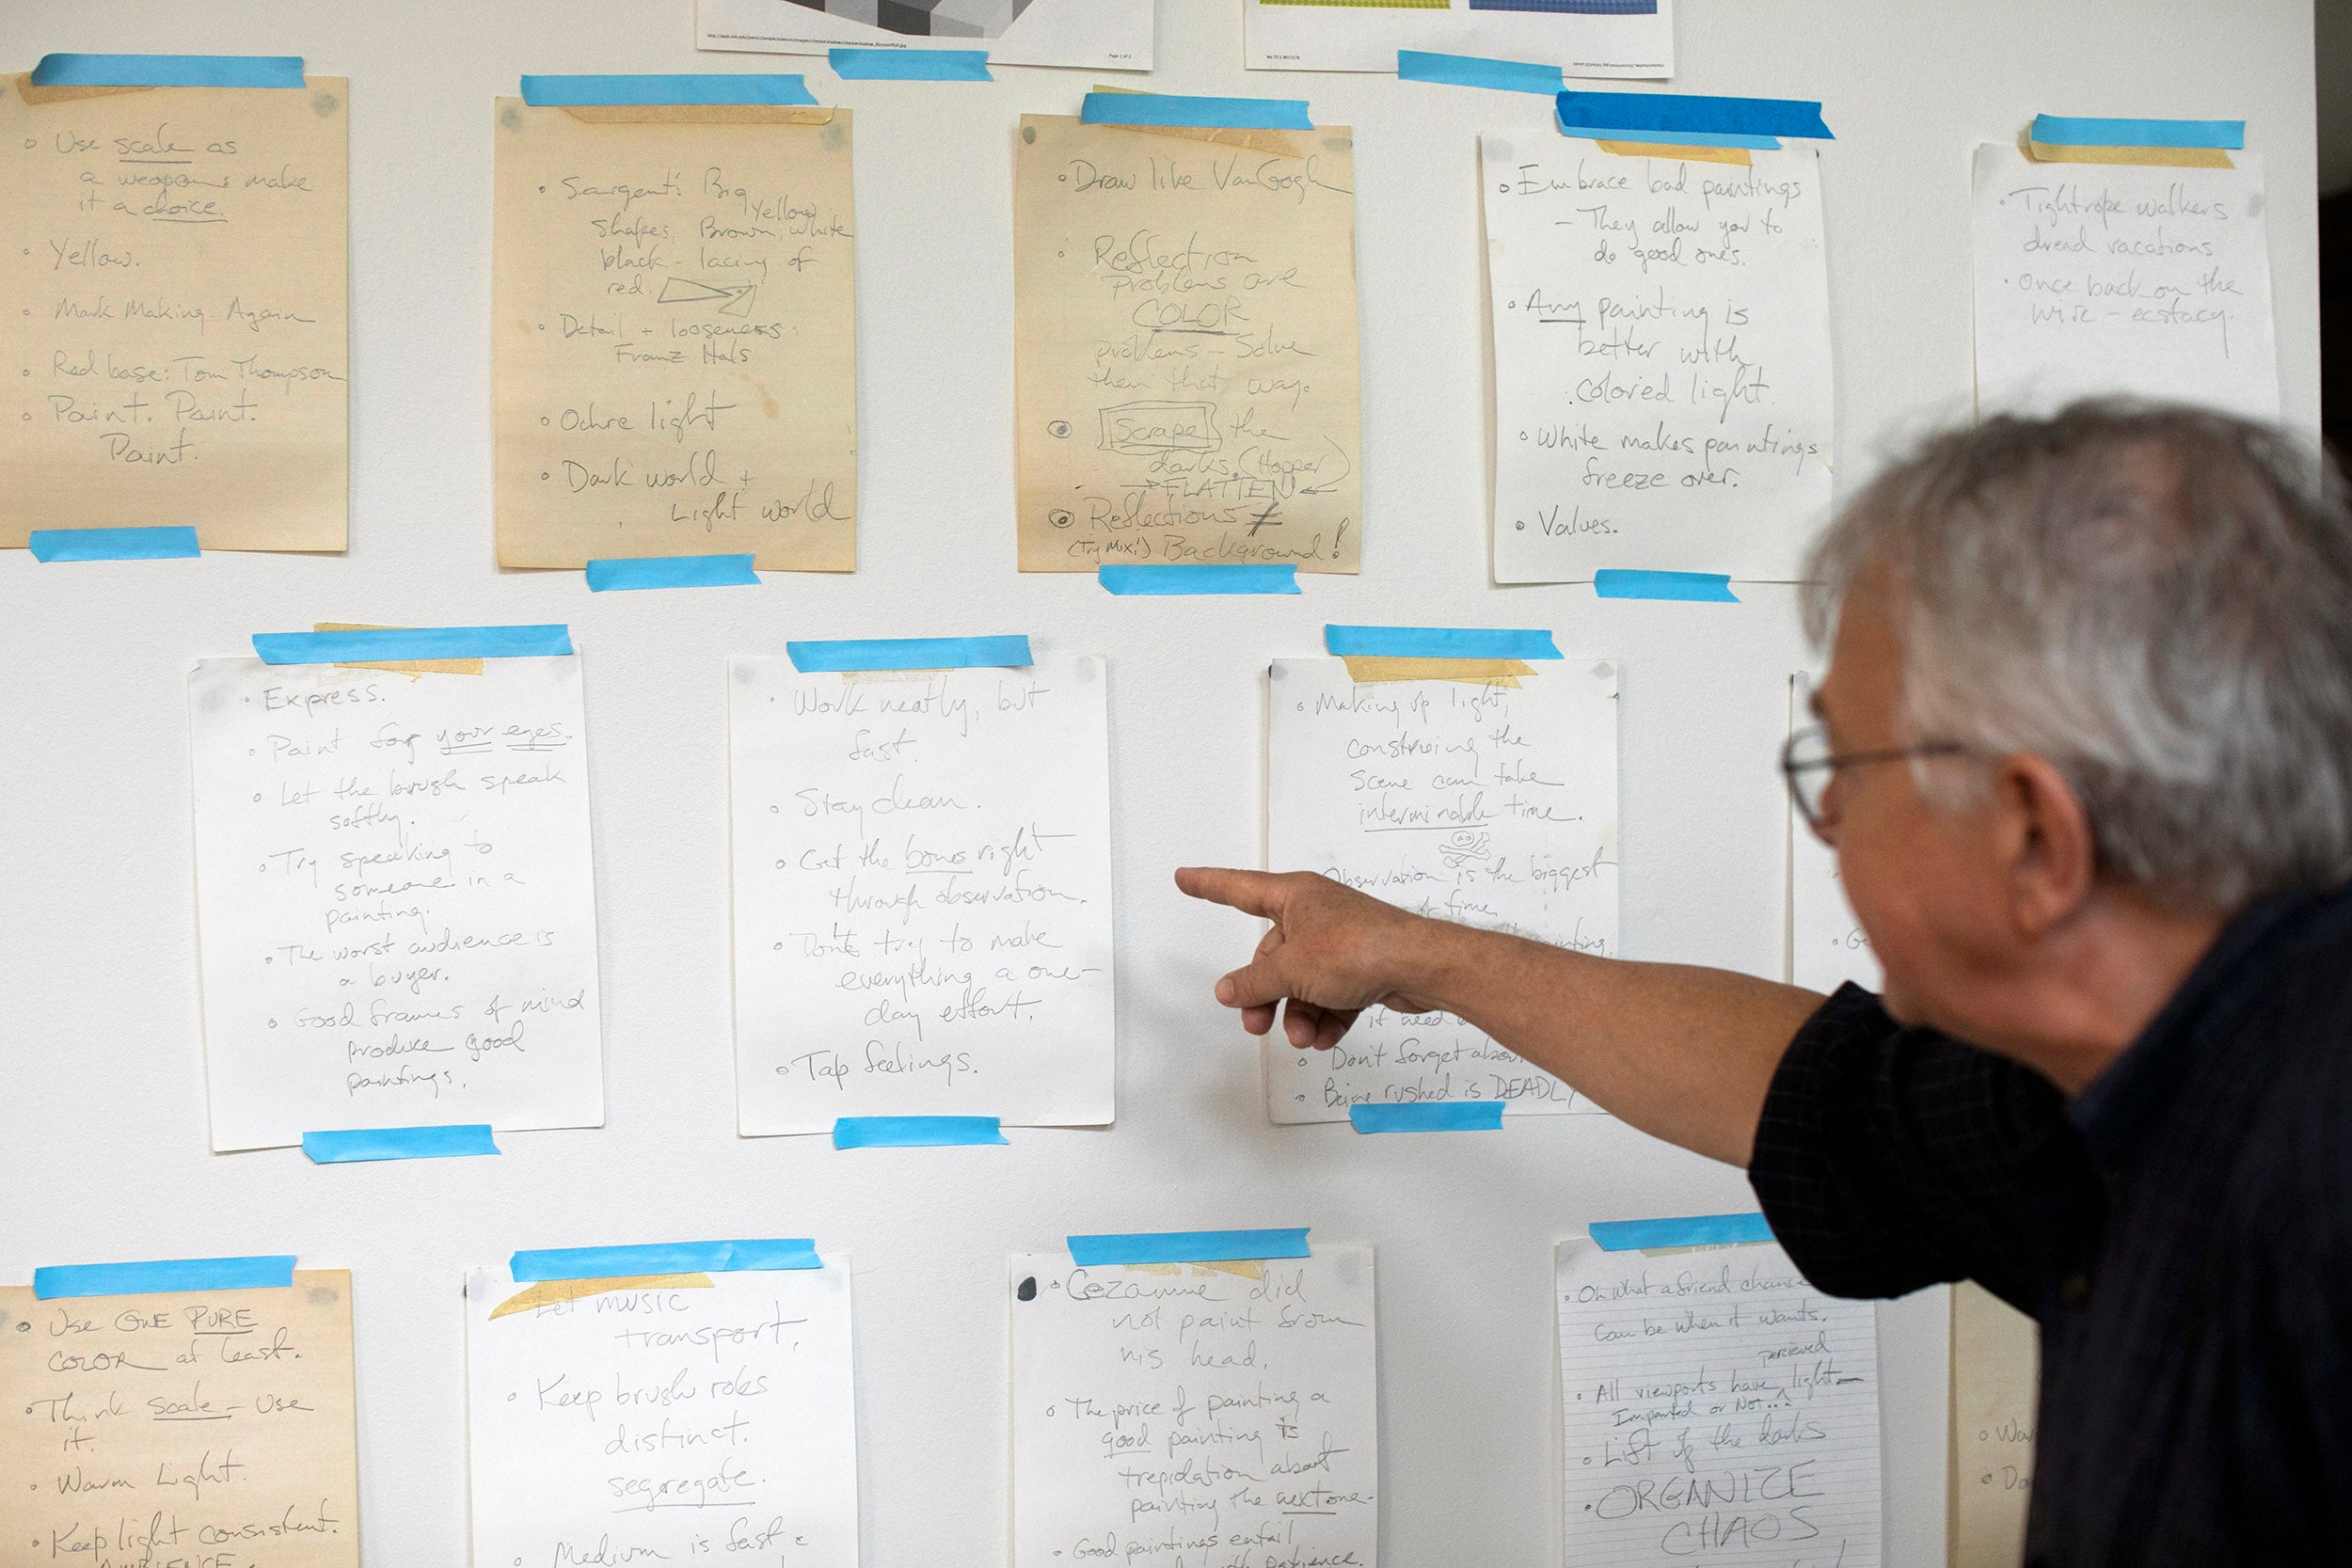 Stephen Coit points to an array of helpful and inspiration notes taped to his studio wall.